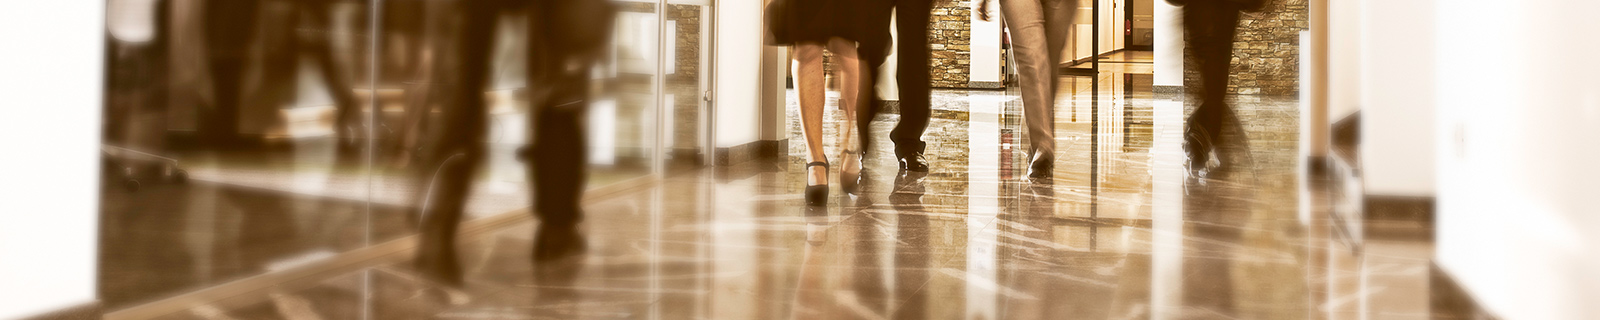 People walking in an office environment